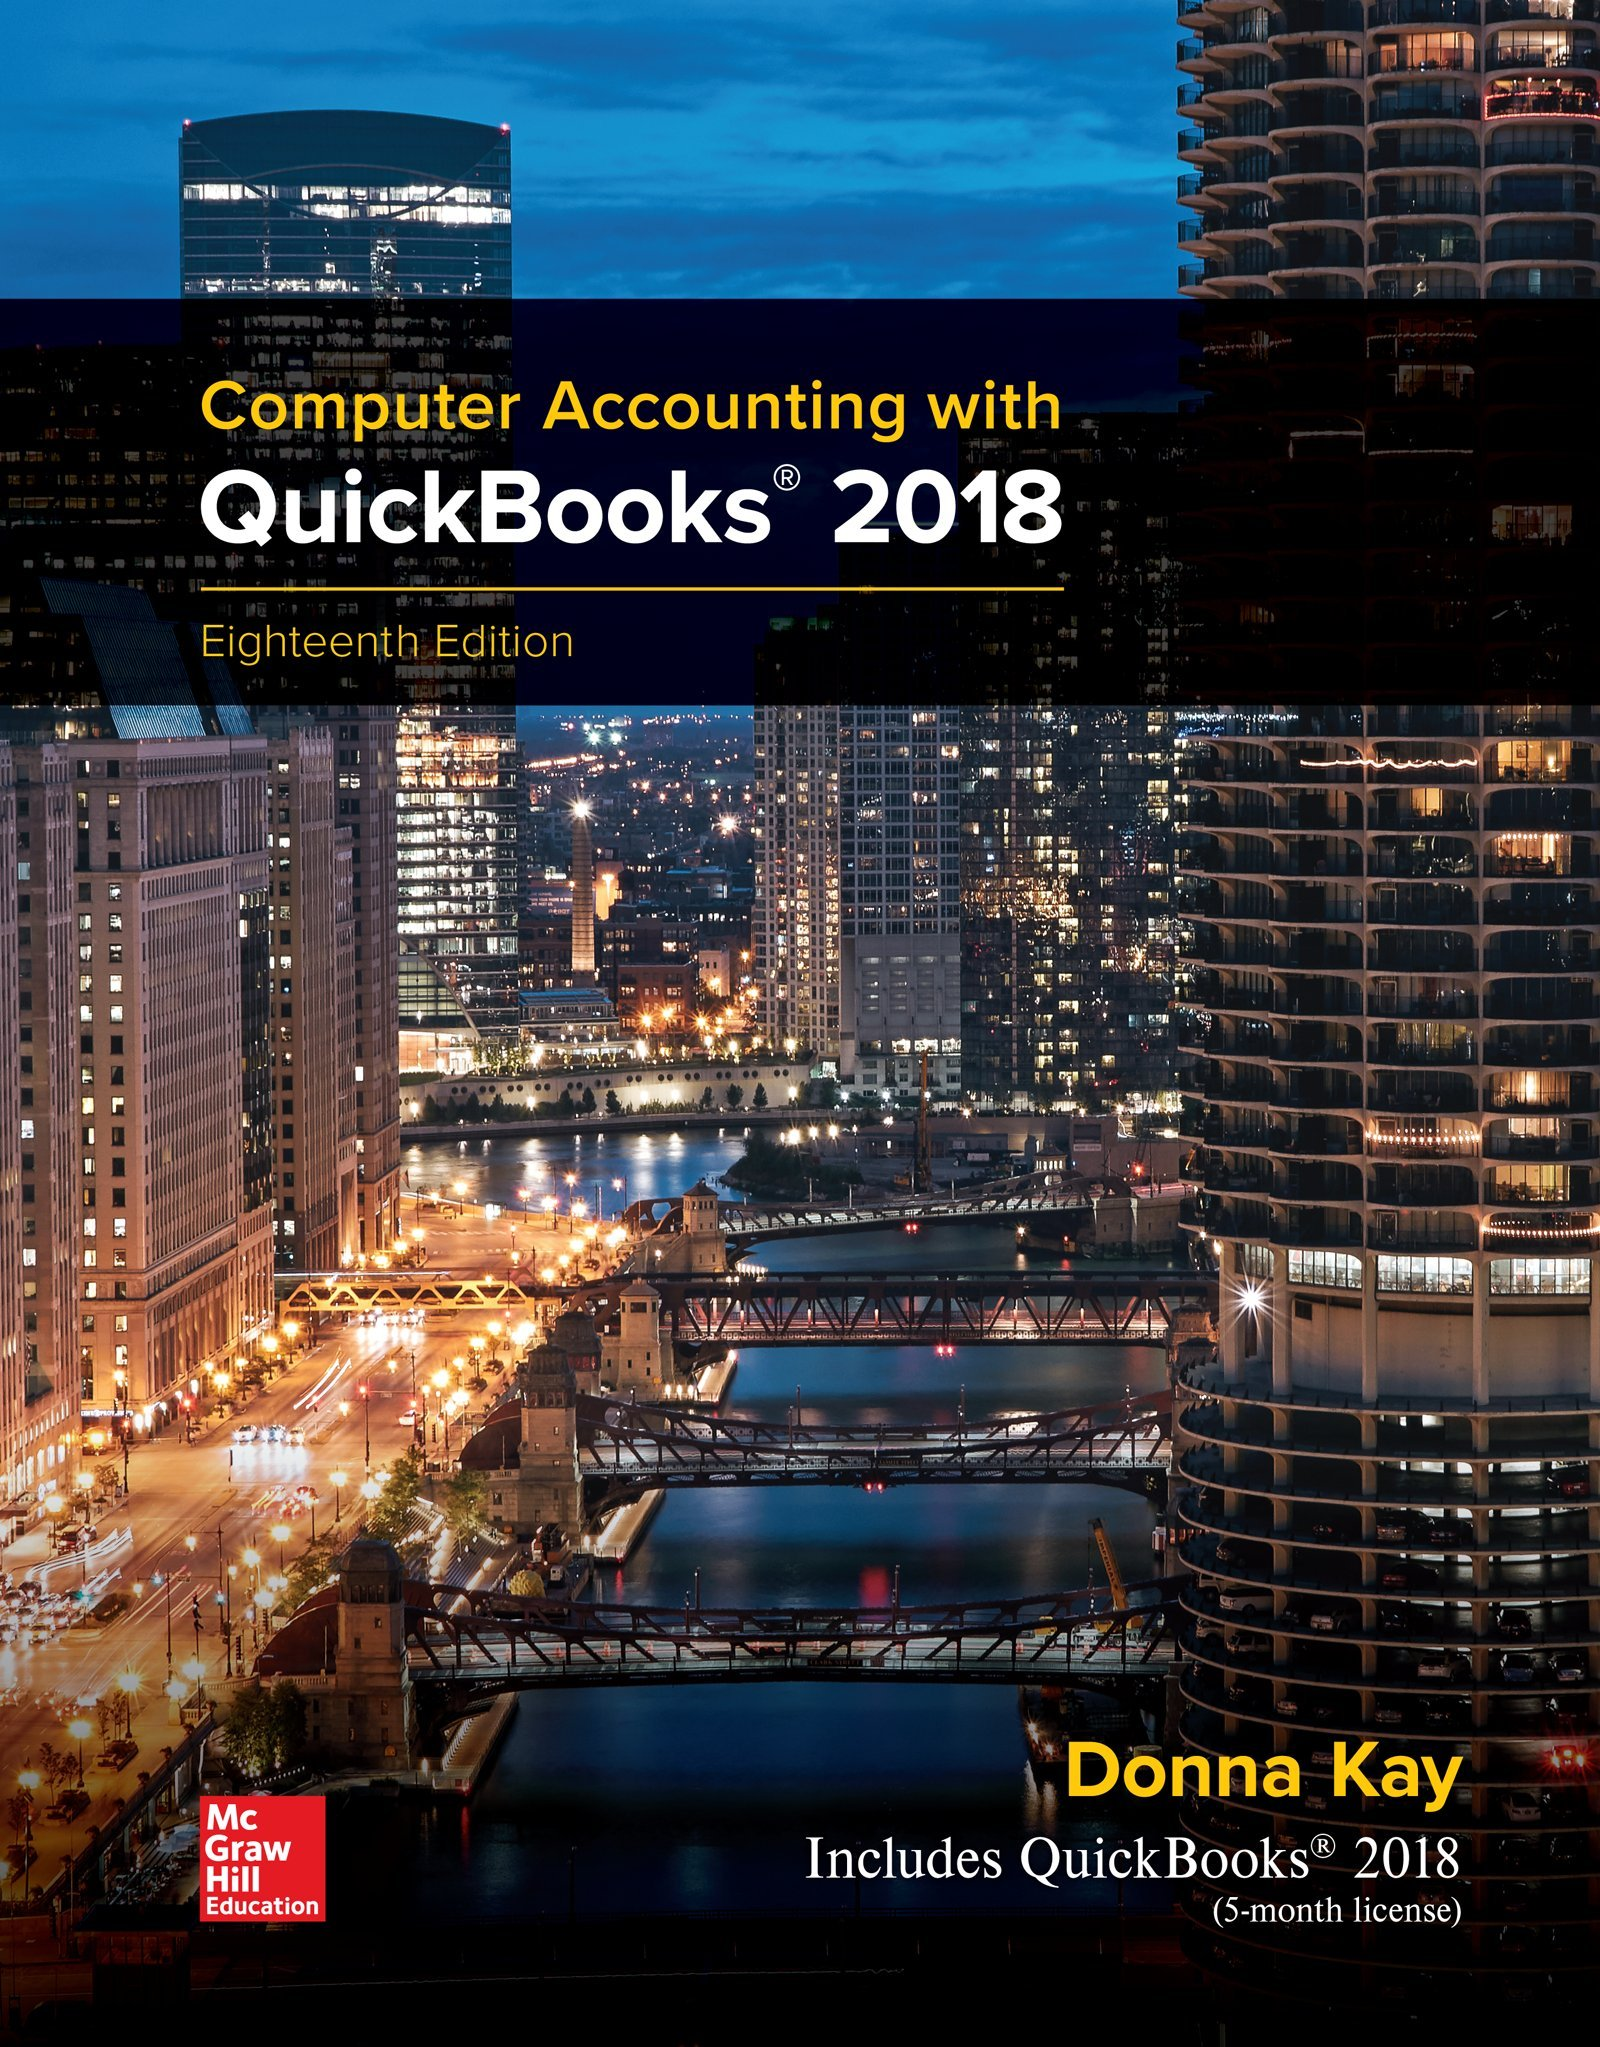 MP Computer Accounting with QuickBooks 2018 by McGraw-Hill Education